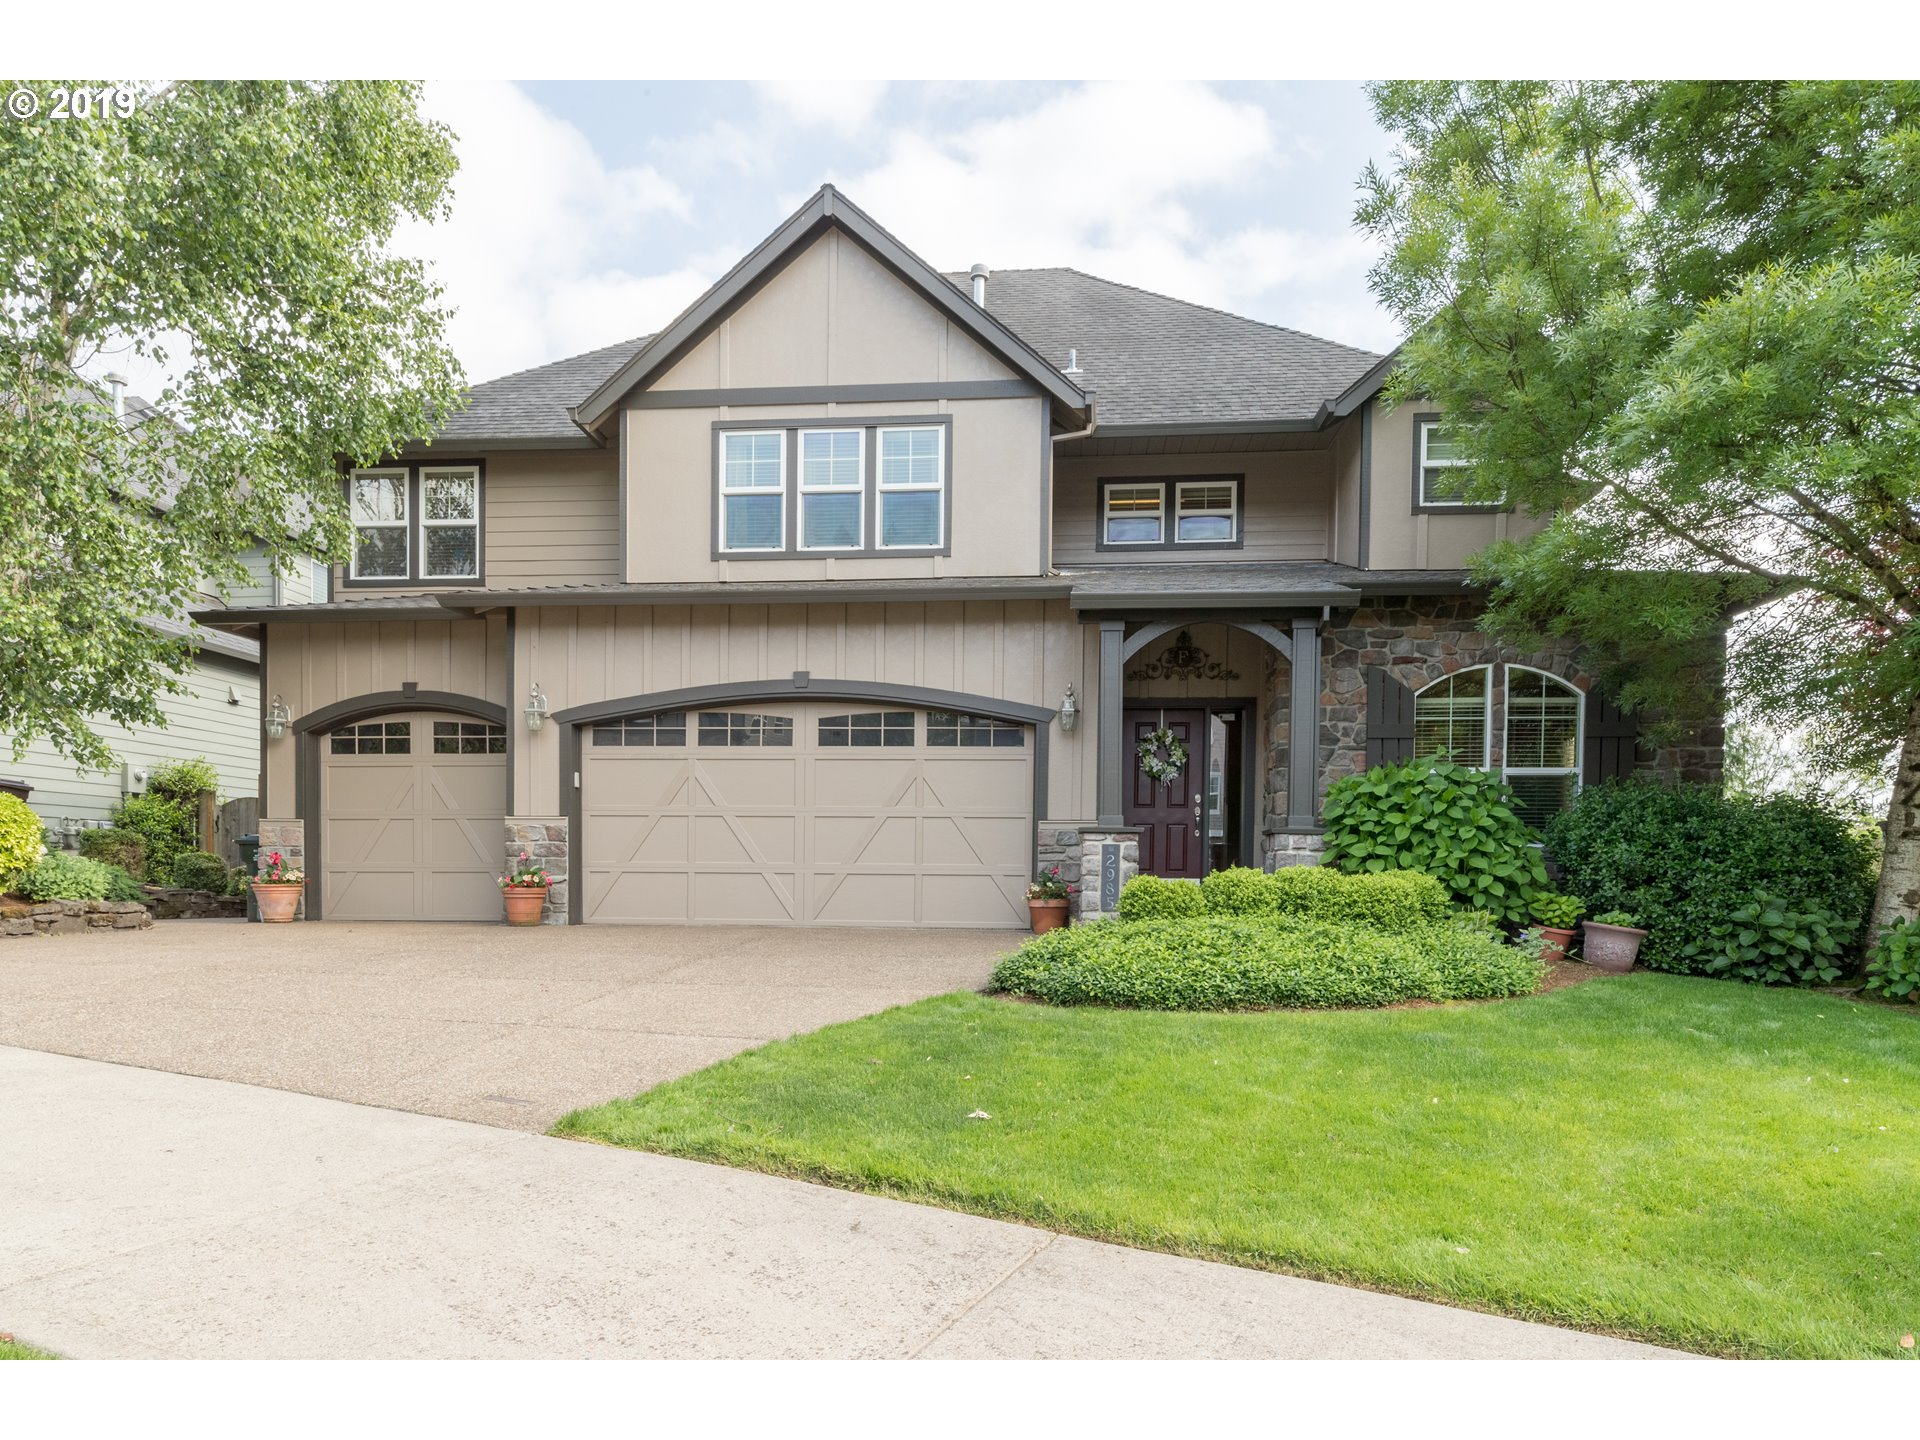 Updates throughout this Beautiful West LInn Home. Master Bath, Kitchen, interior and exterior paint is just the beginning.  This one is a must see if you are looking for 5-6 Bedrooms. The 6th Bedroom is also the Bonus room with custom built in to include a closet.